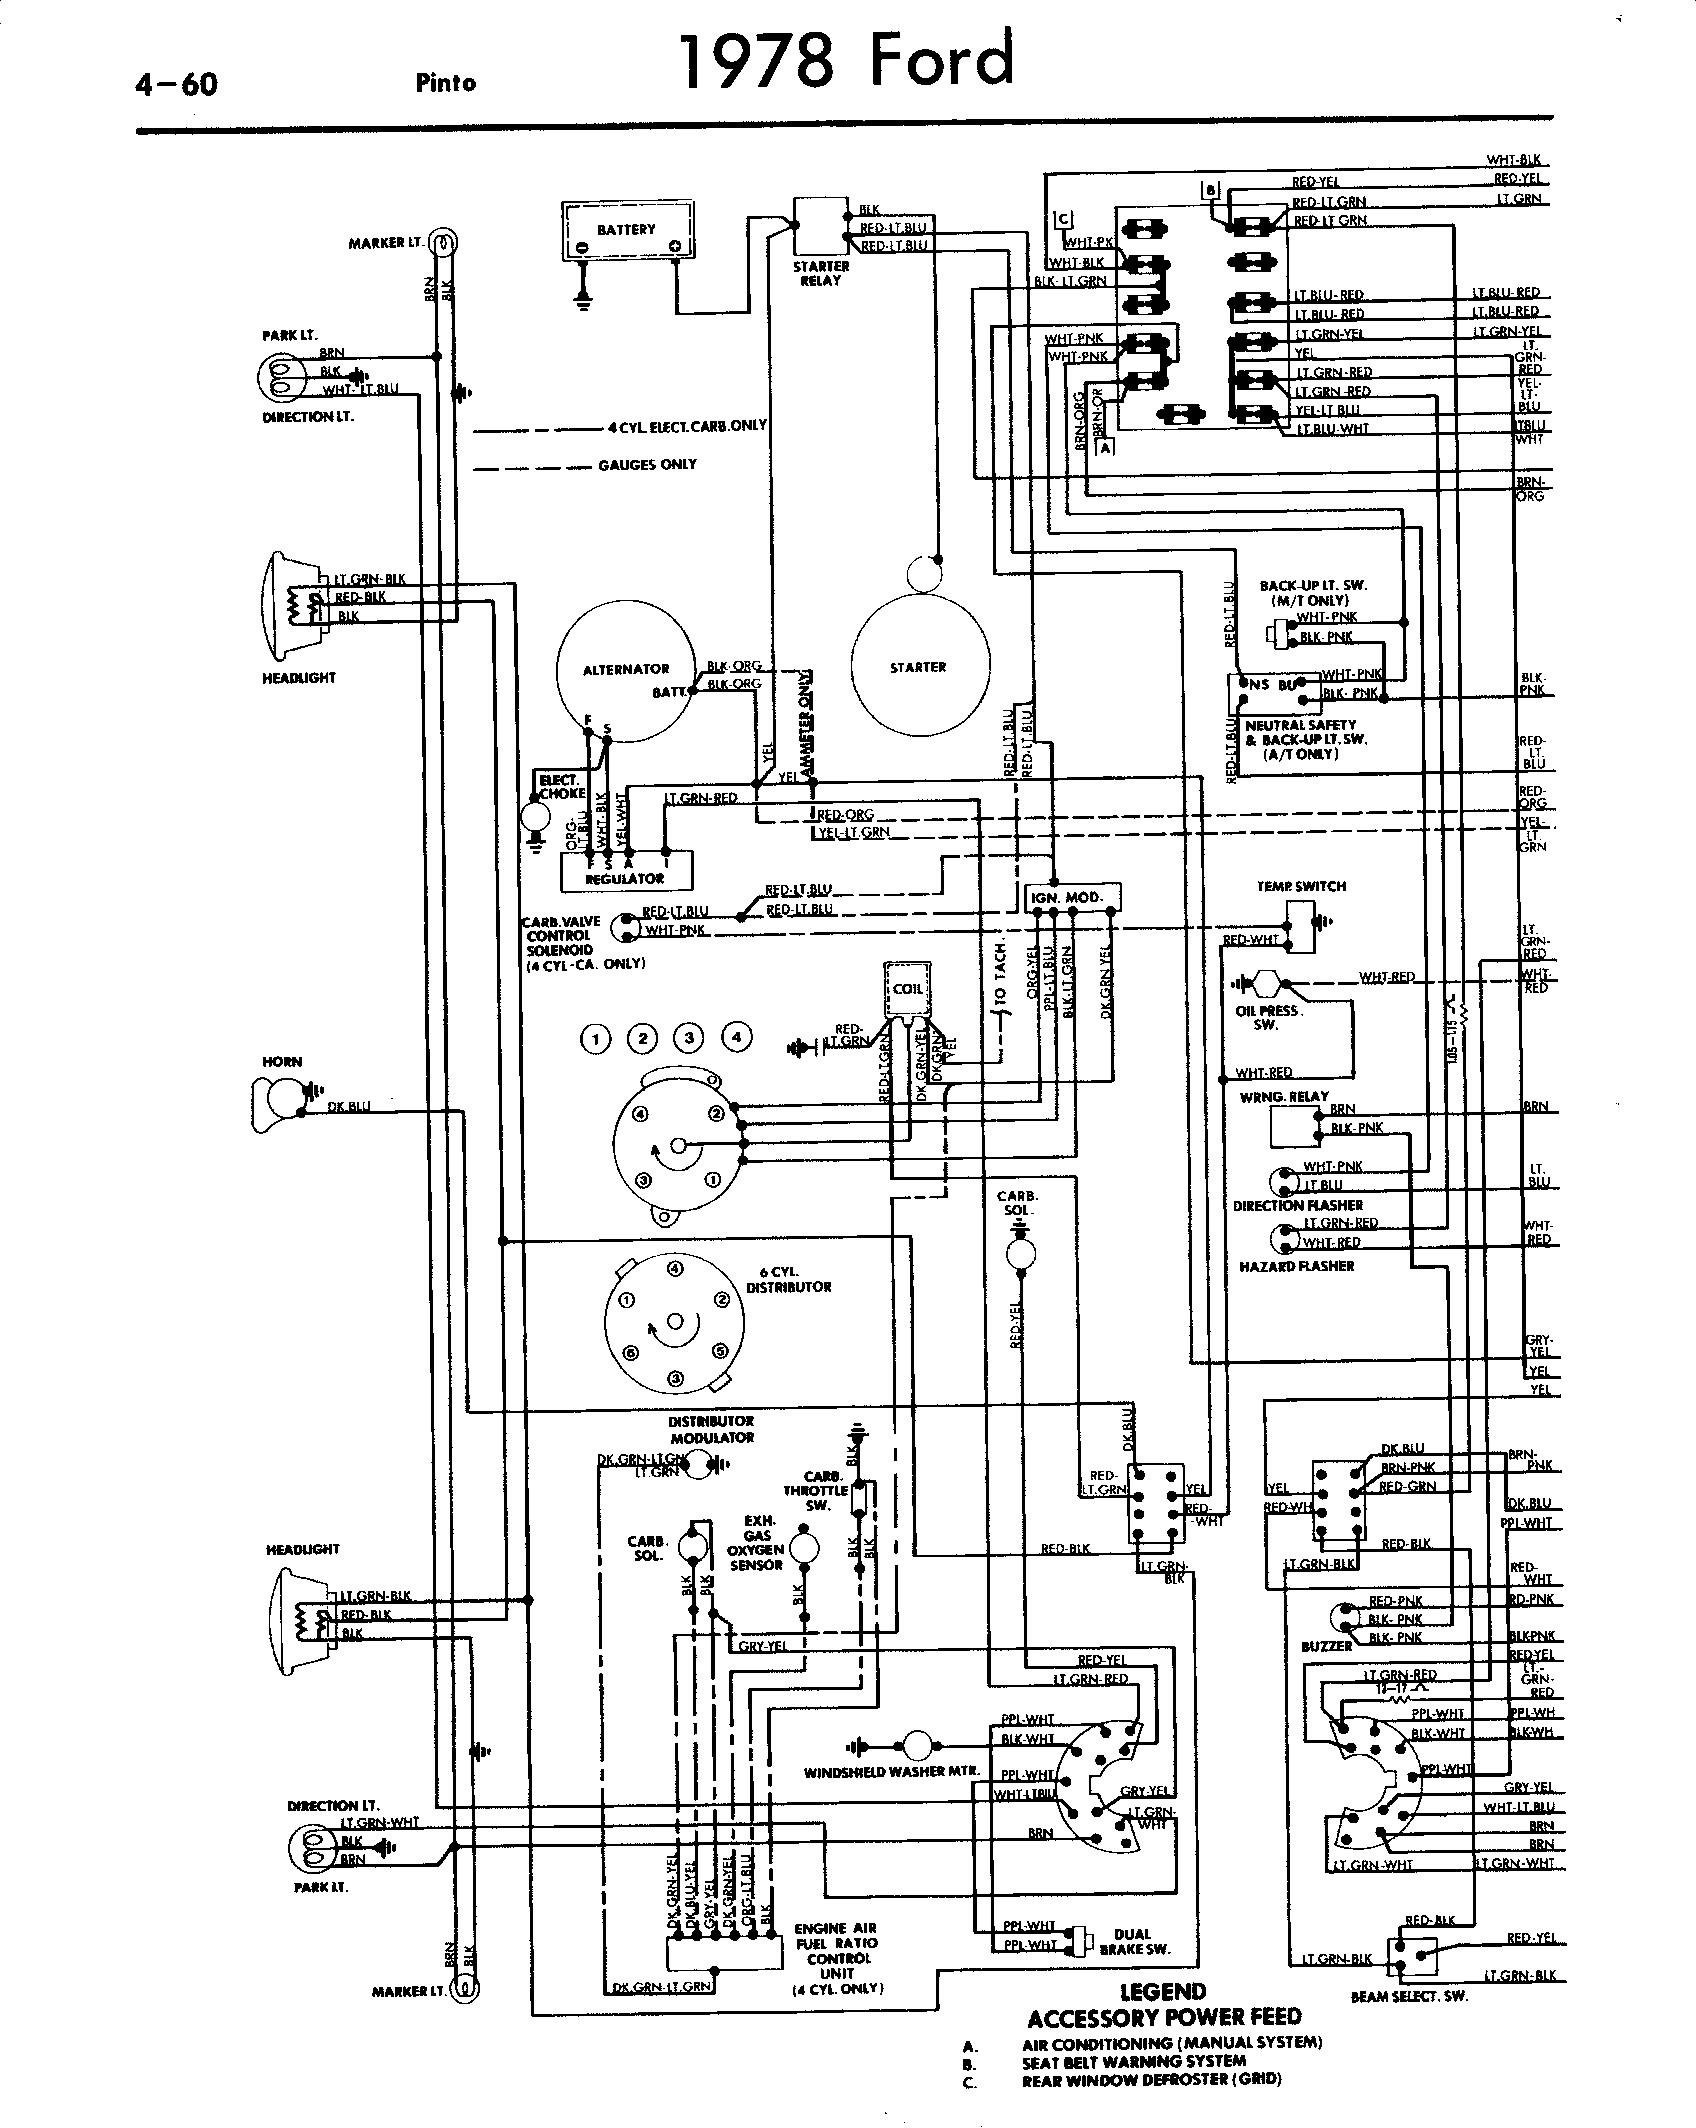 Ford 7 3 Diesel Engine Diagram 2 My Wiring Diagram